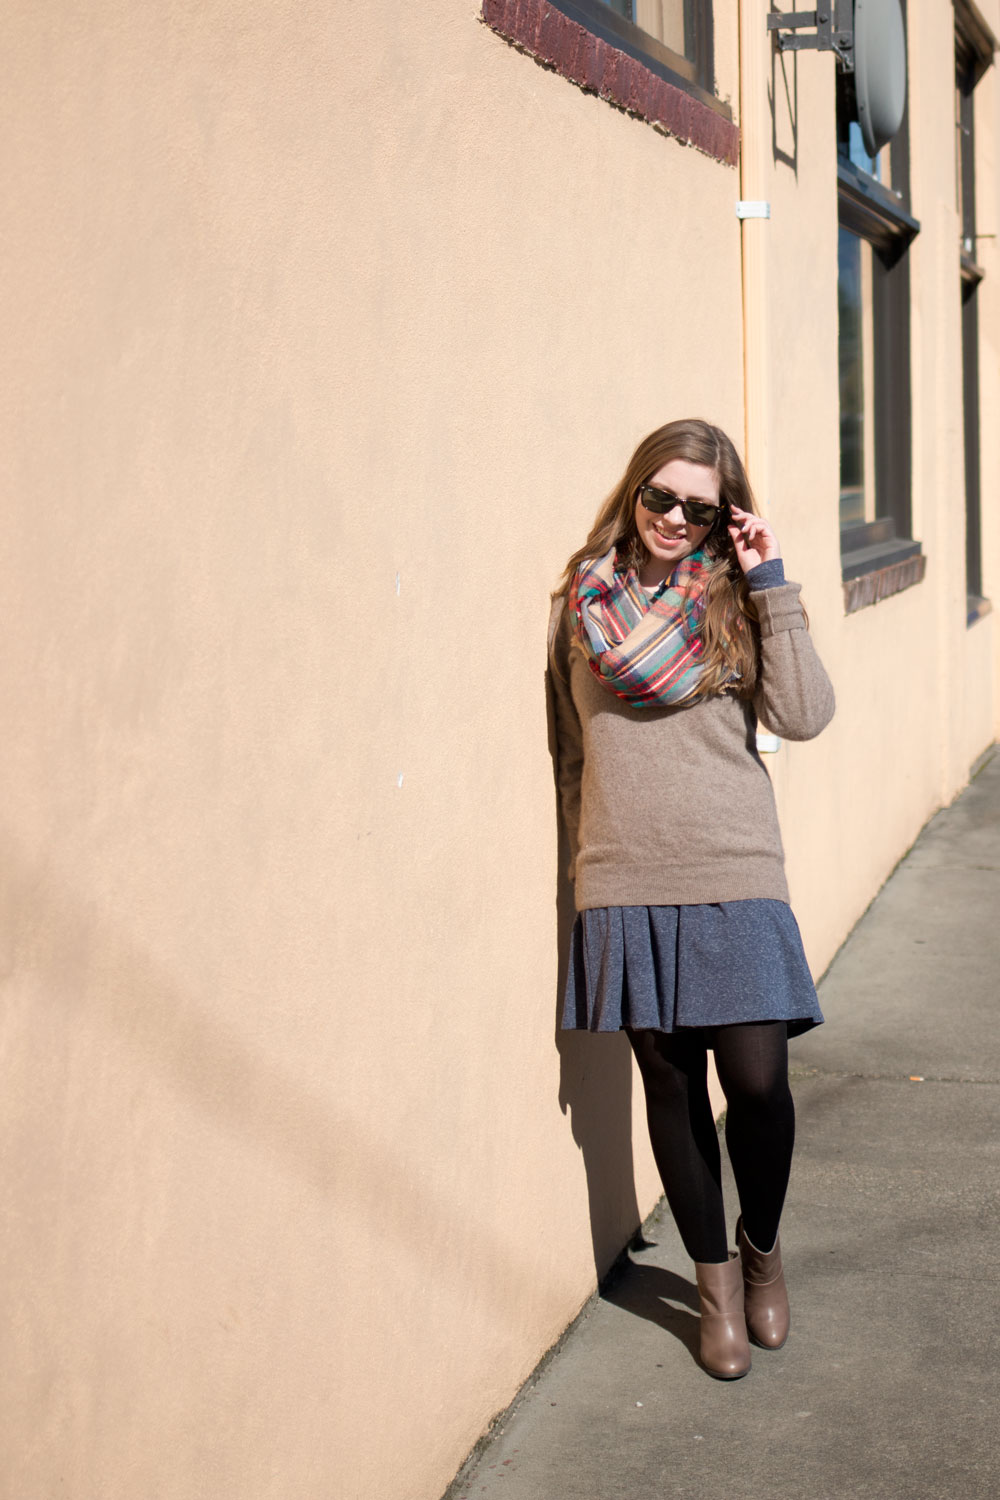 Puella Swing Dress, Cashmere Sweater, & Blanket Scarf Outfit / hellorigby seattle fashion blog